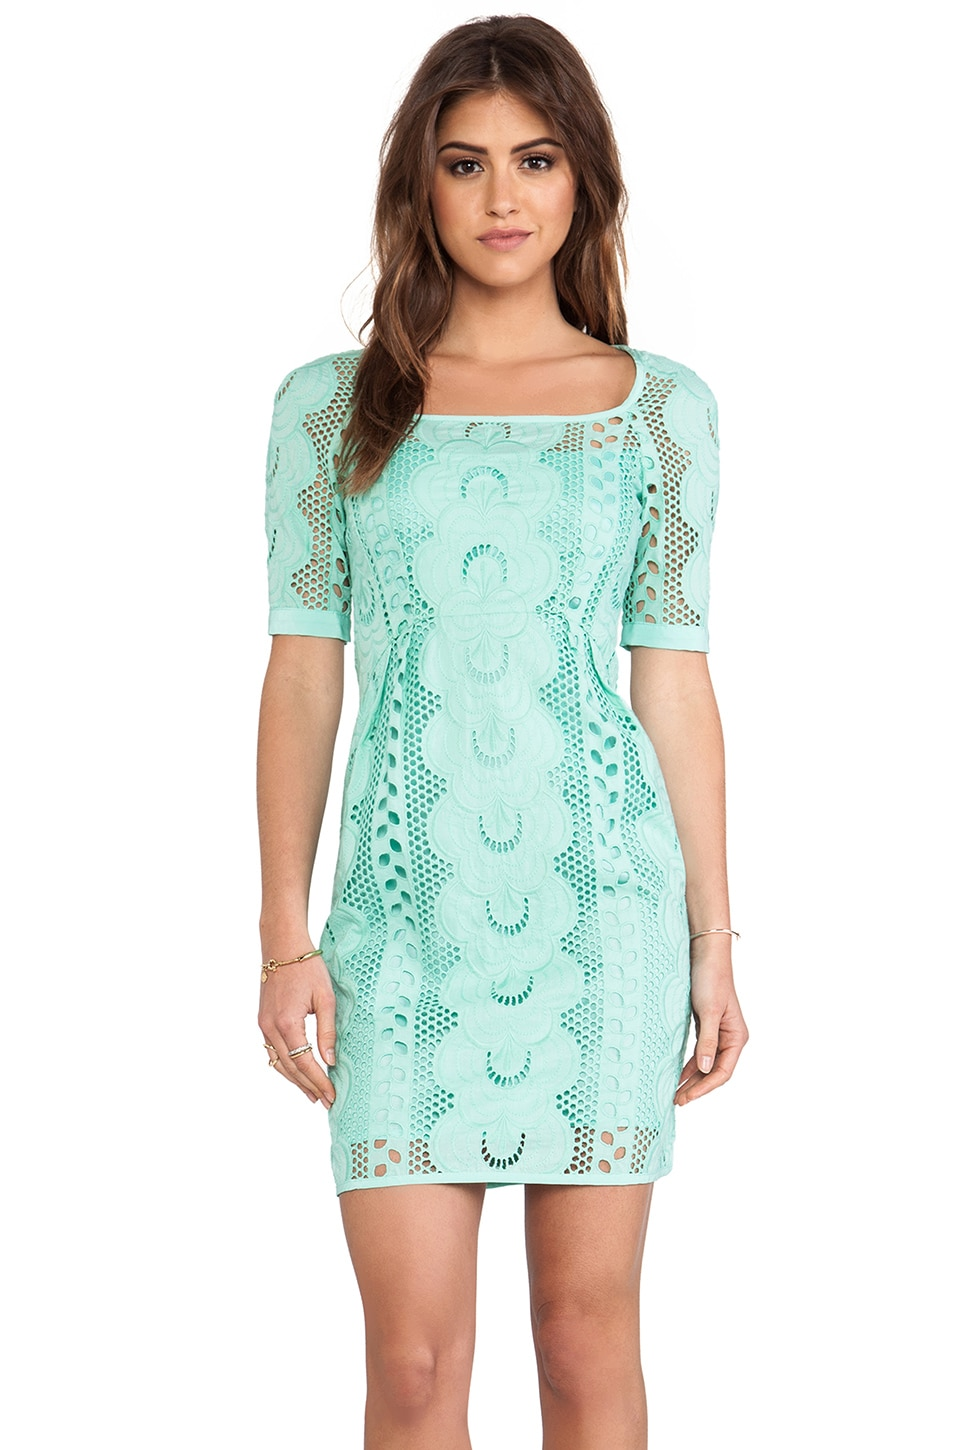 Nanette Lepore Sandy Beach Dress in Mint